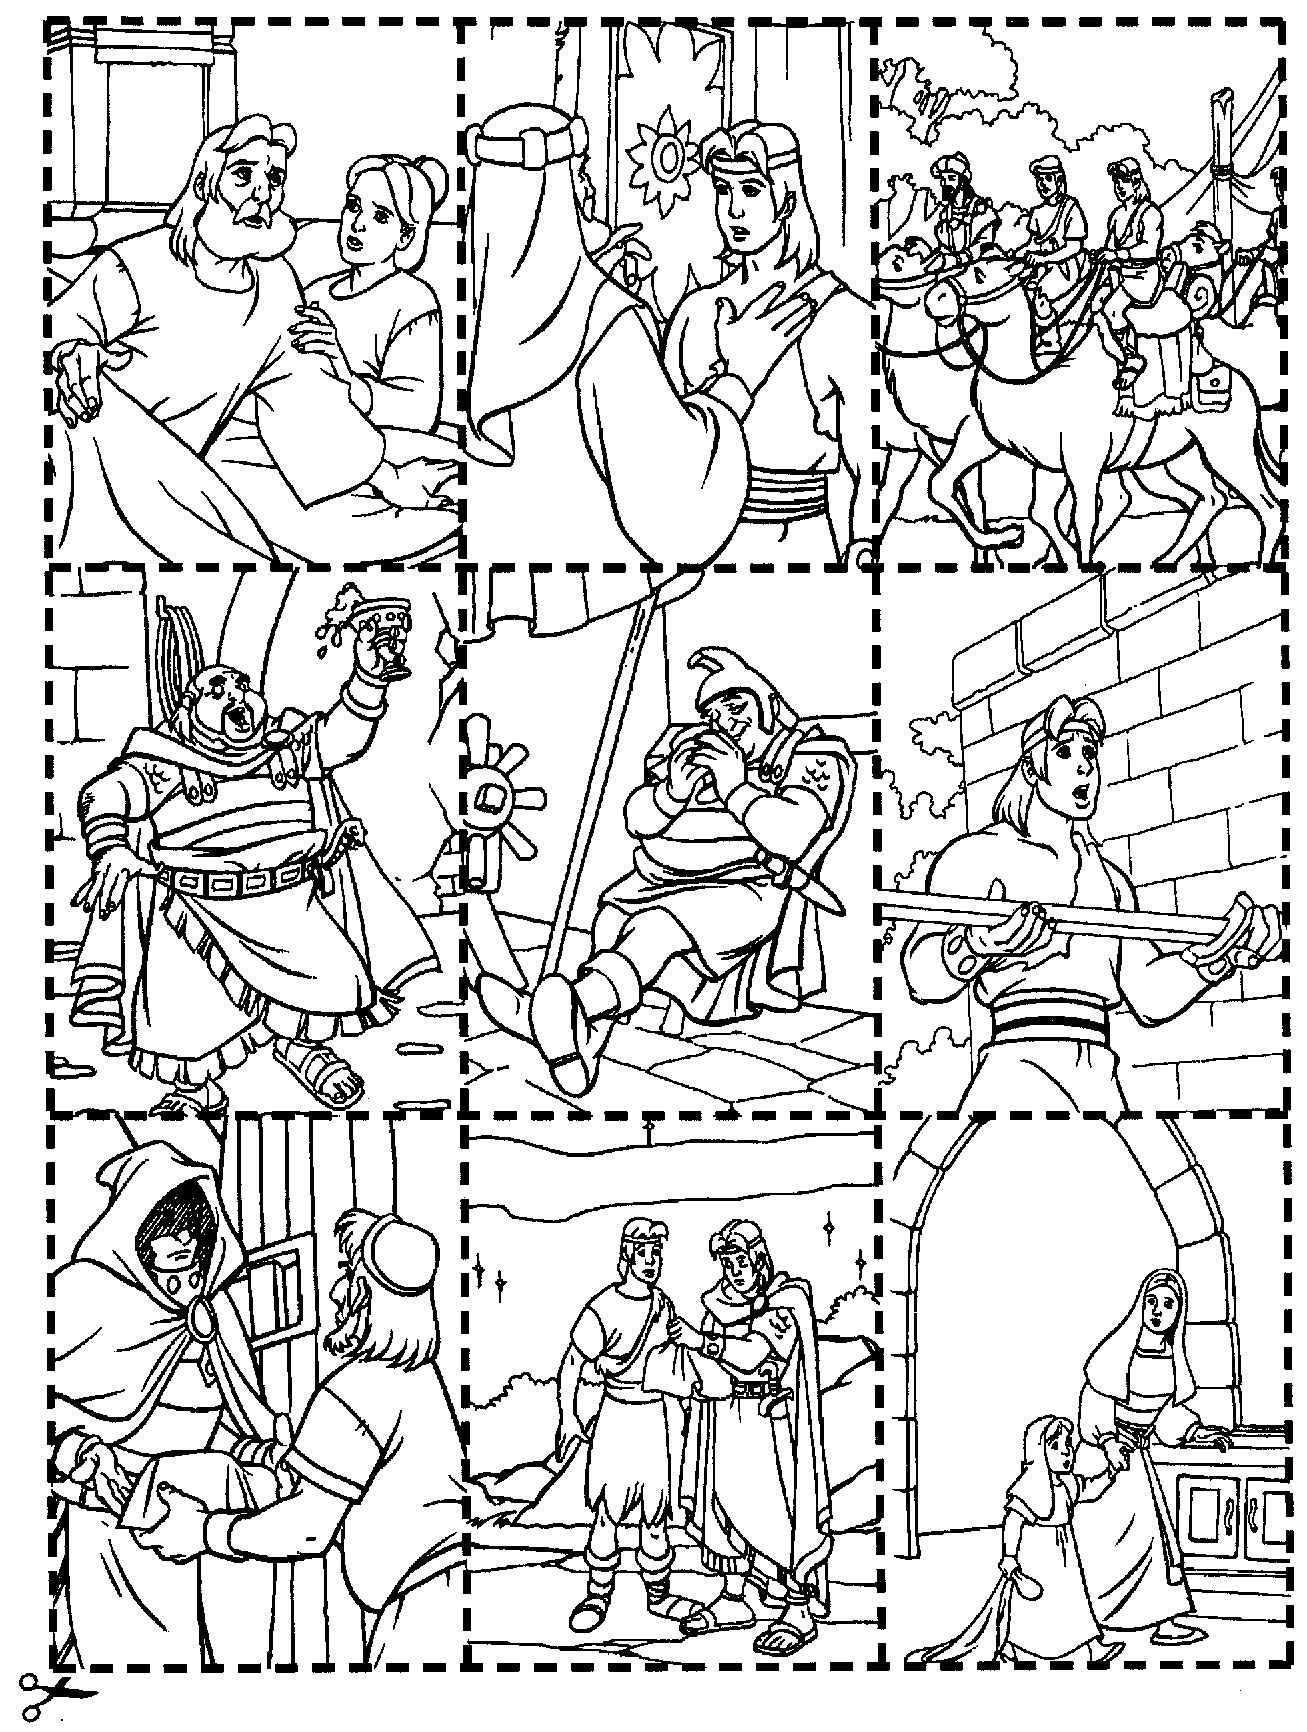 Fhe I Will Go And Do Lds Coloring Pages Fhe Book Of Mormon